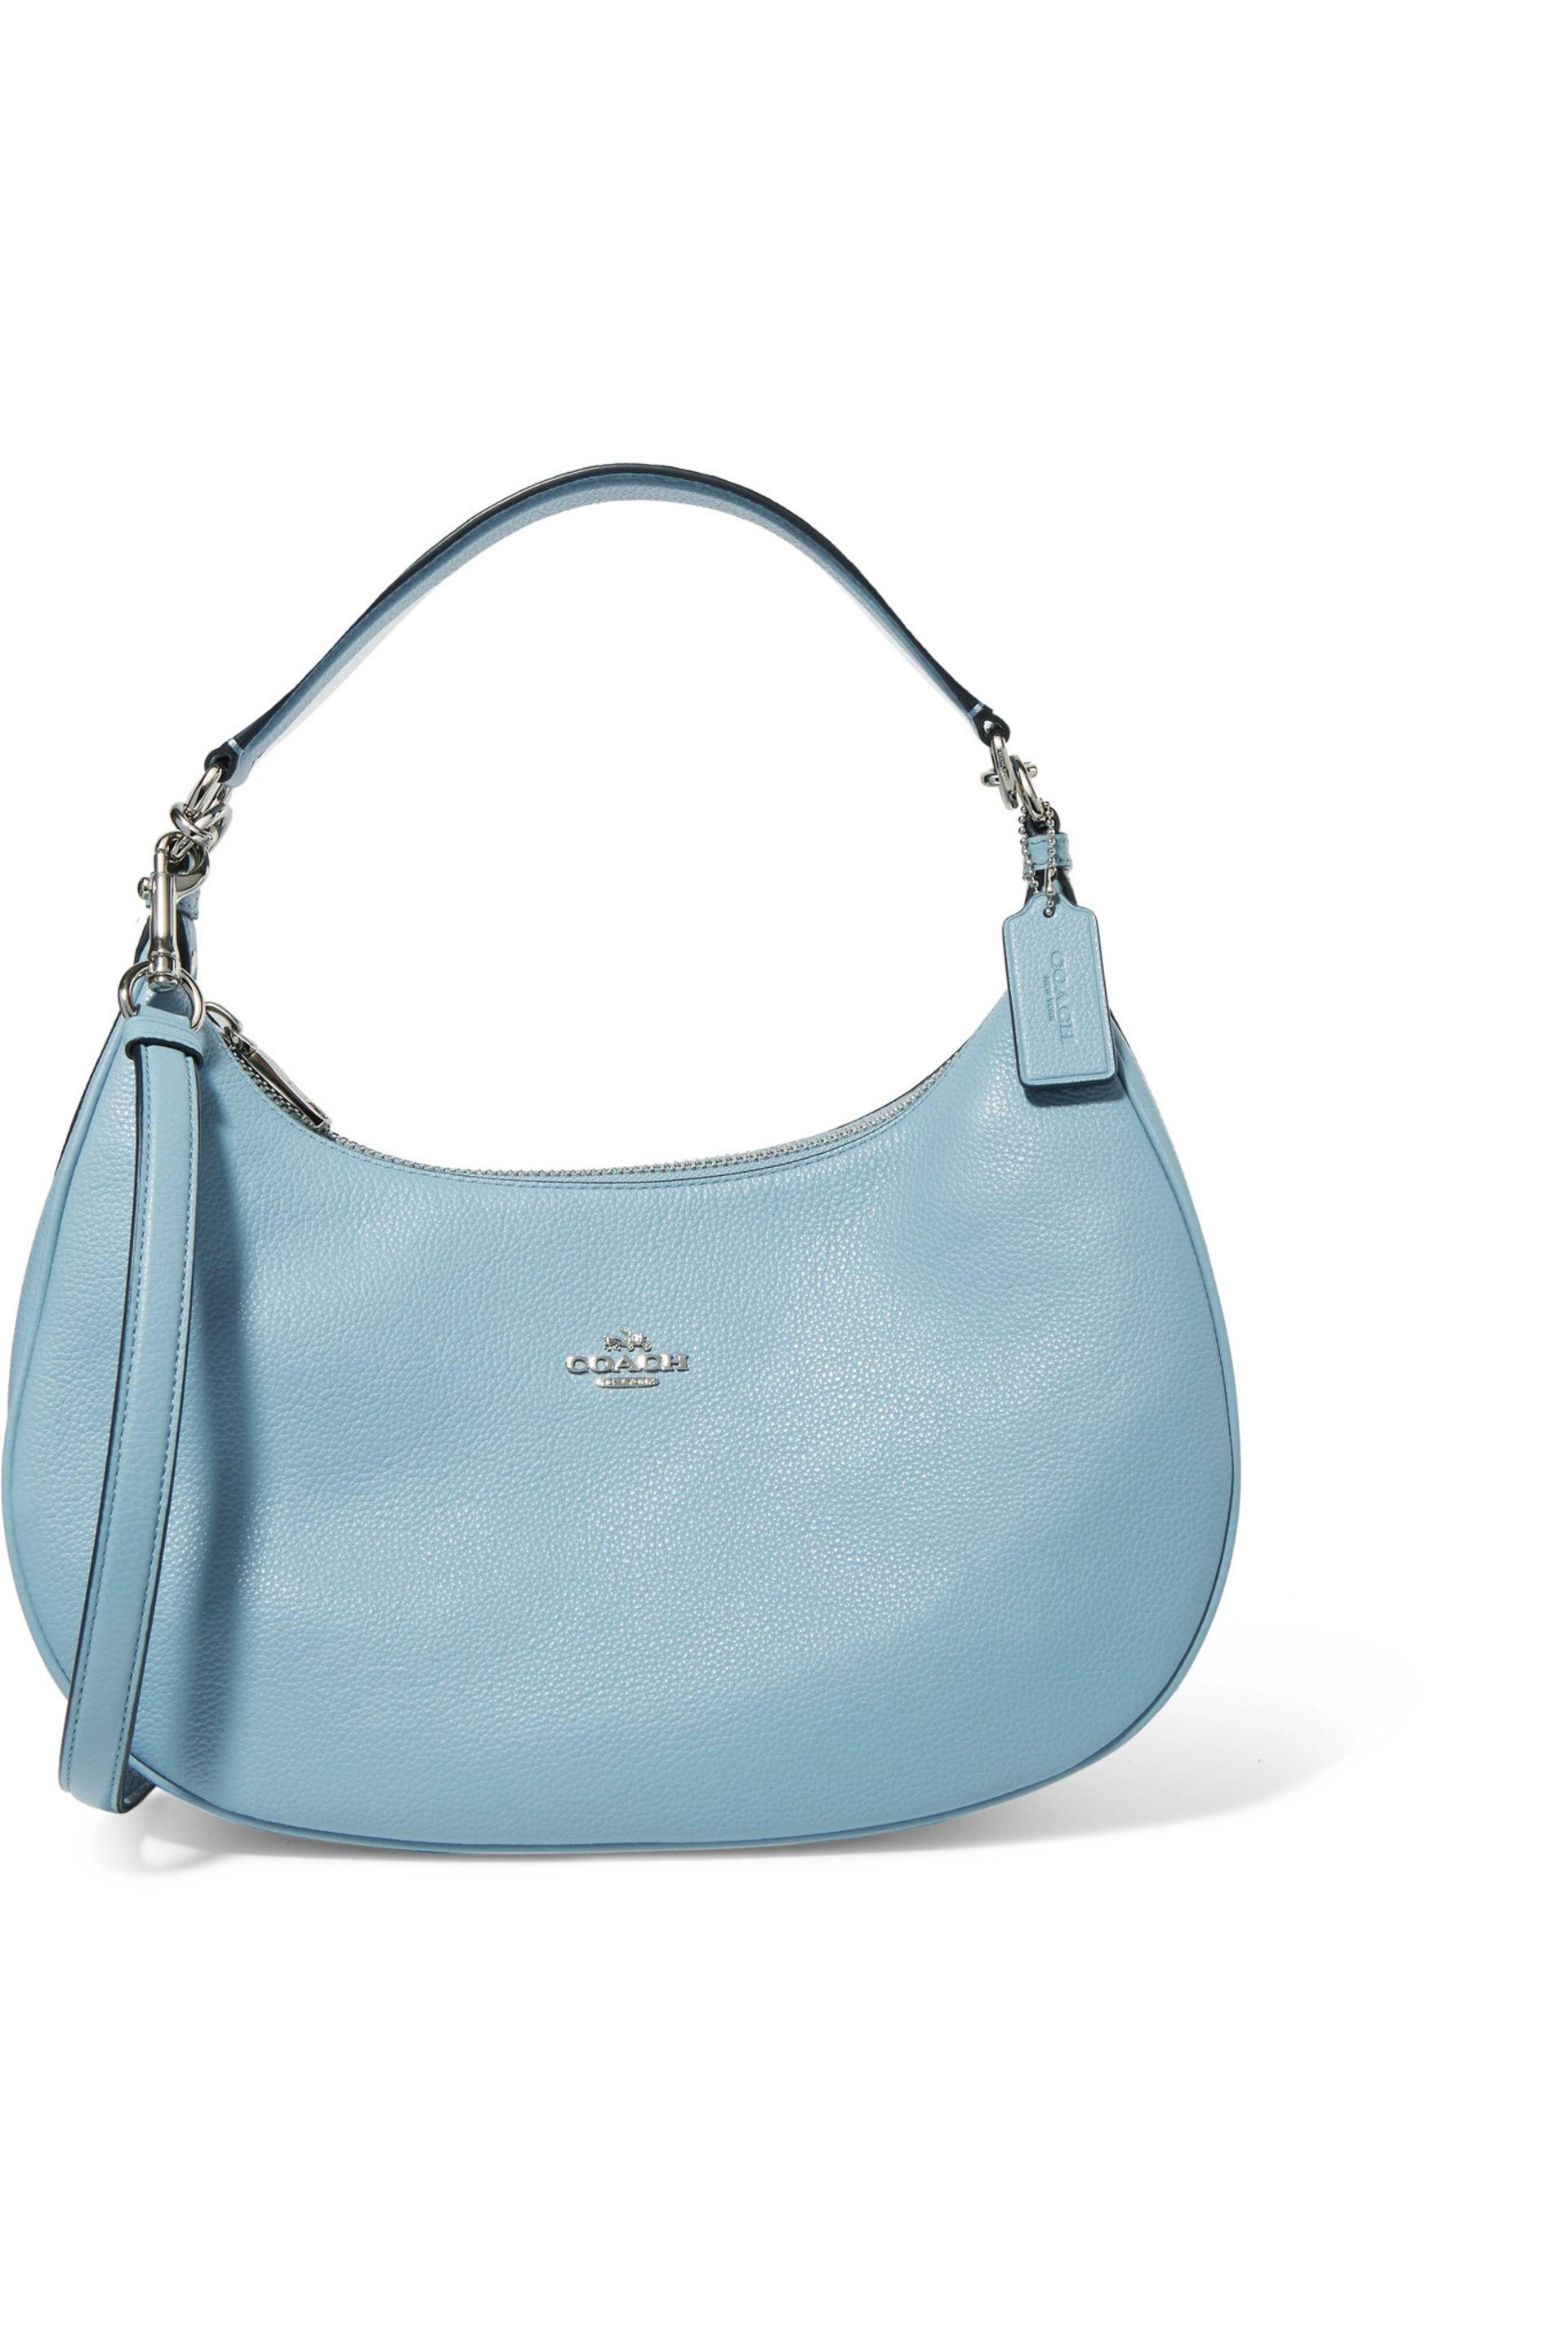 COACH Textred-leather Shoulder Bag Sky Blue in Blue - Lyst 184470f3503c4